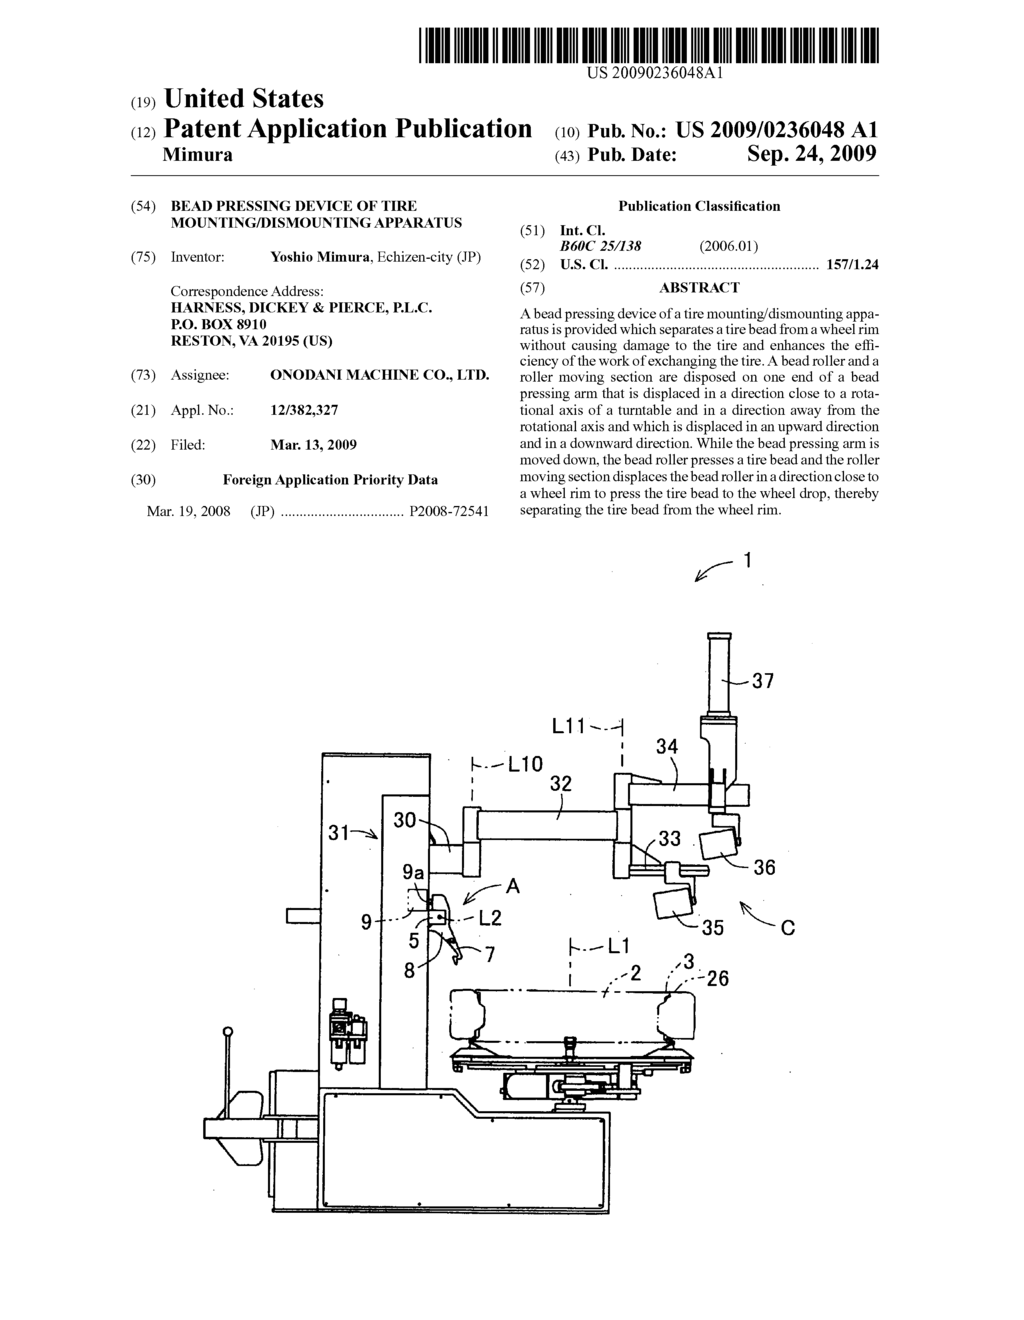 hight resolution of bead pressing device of tire mounting dismounting apparatus diagram schematic and image 01